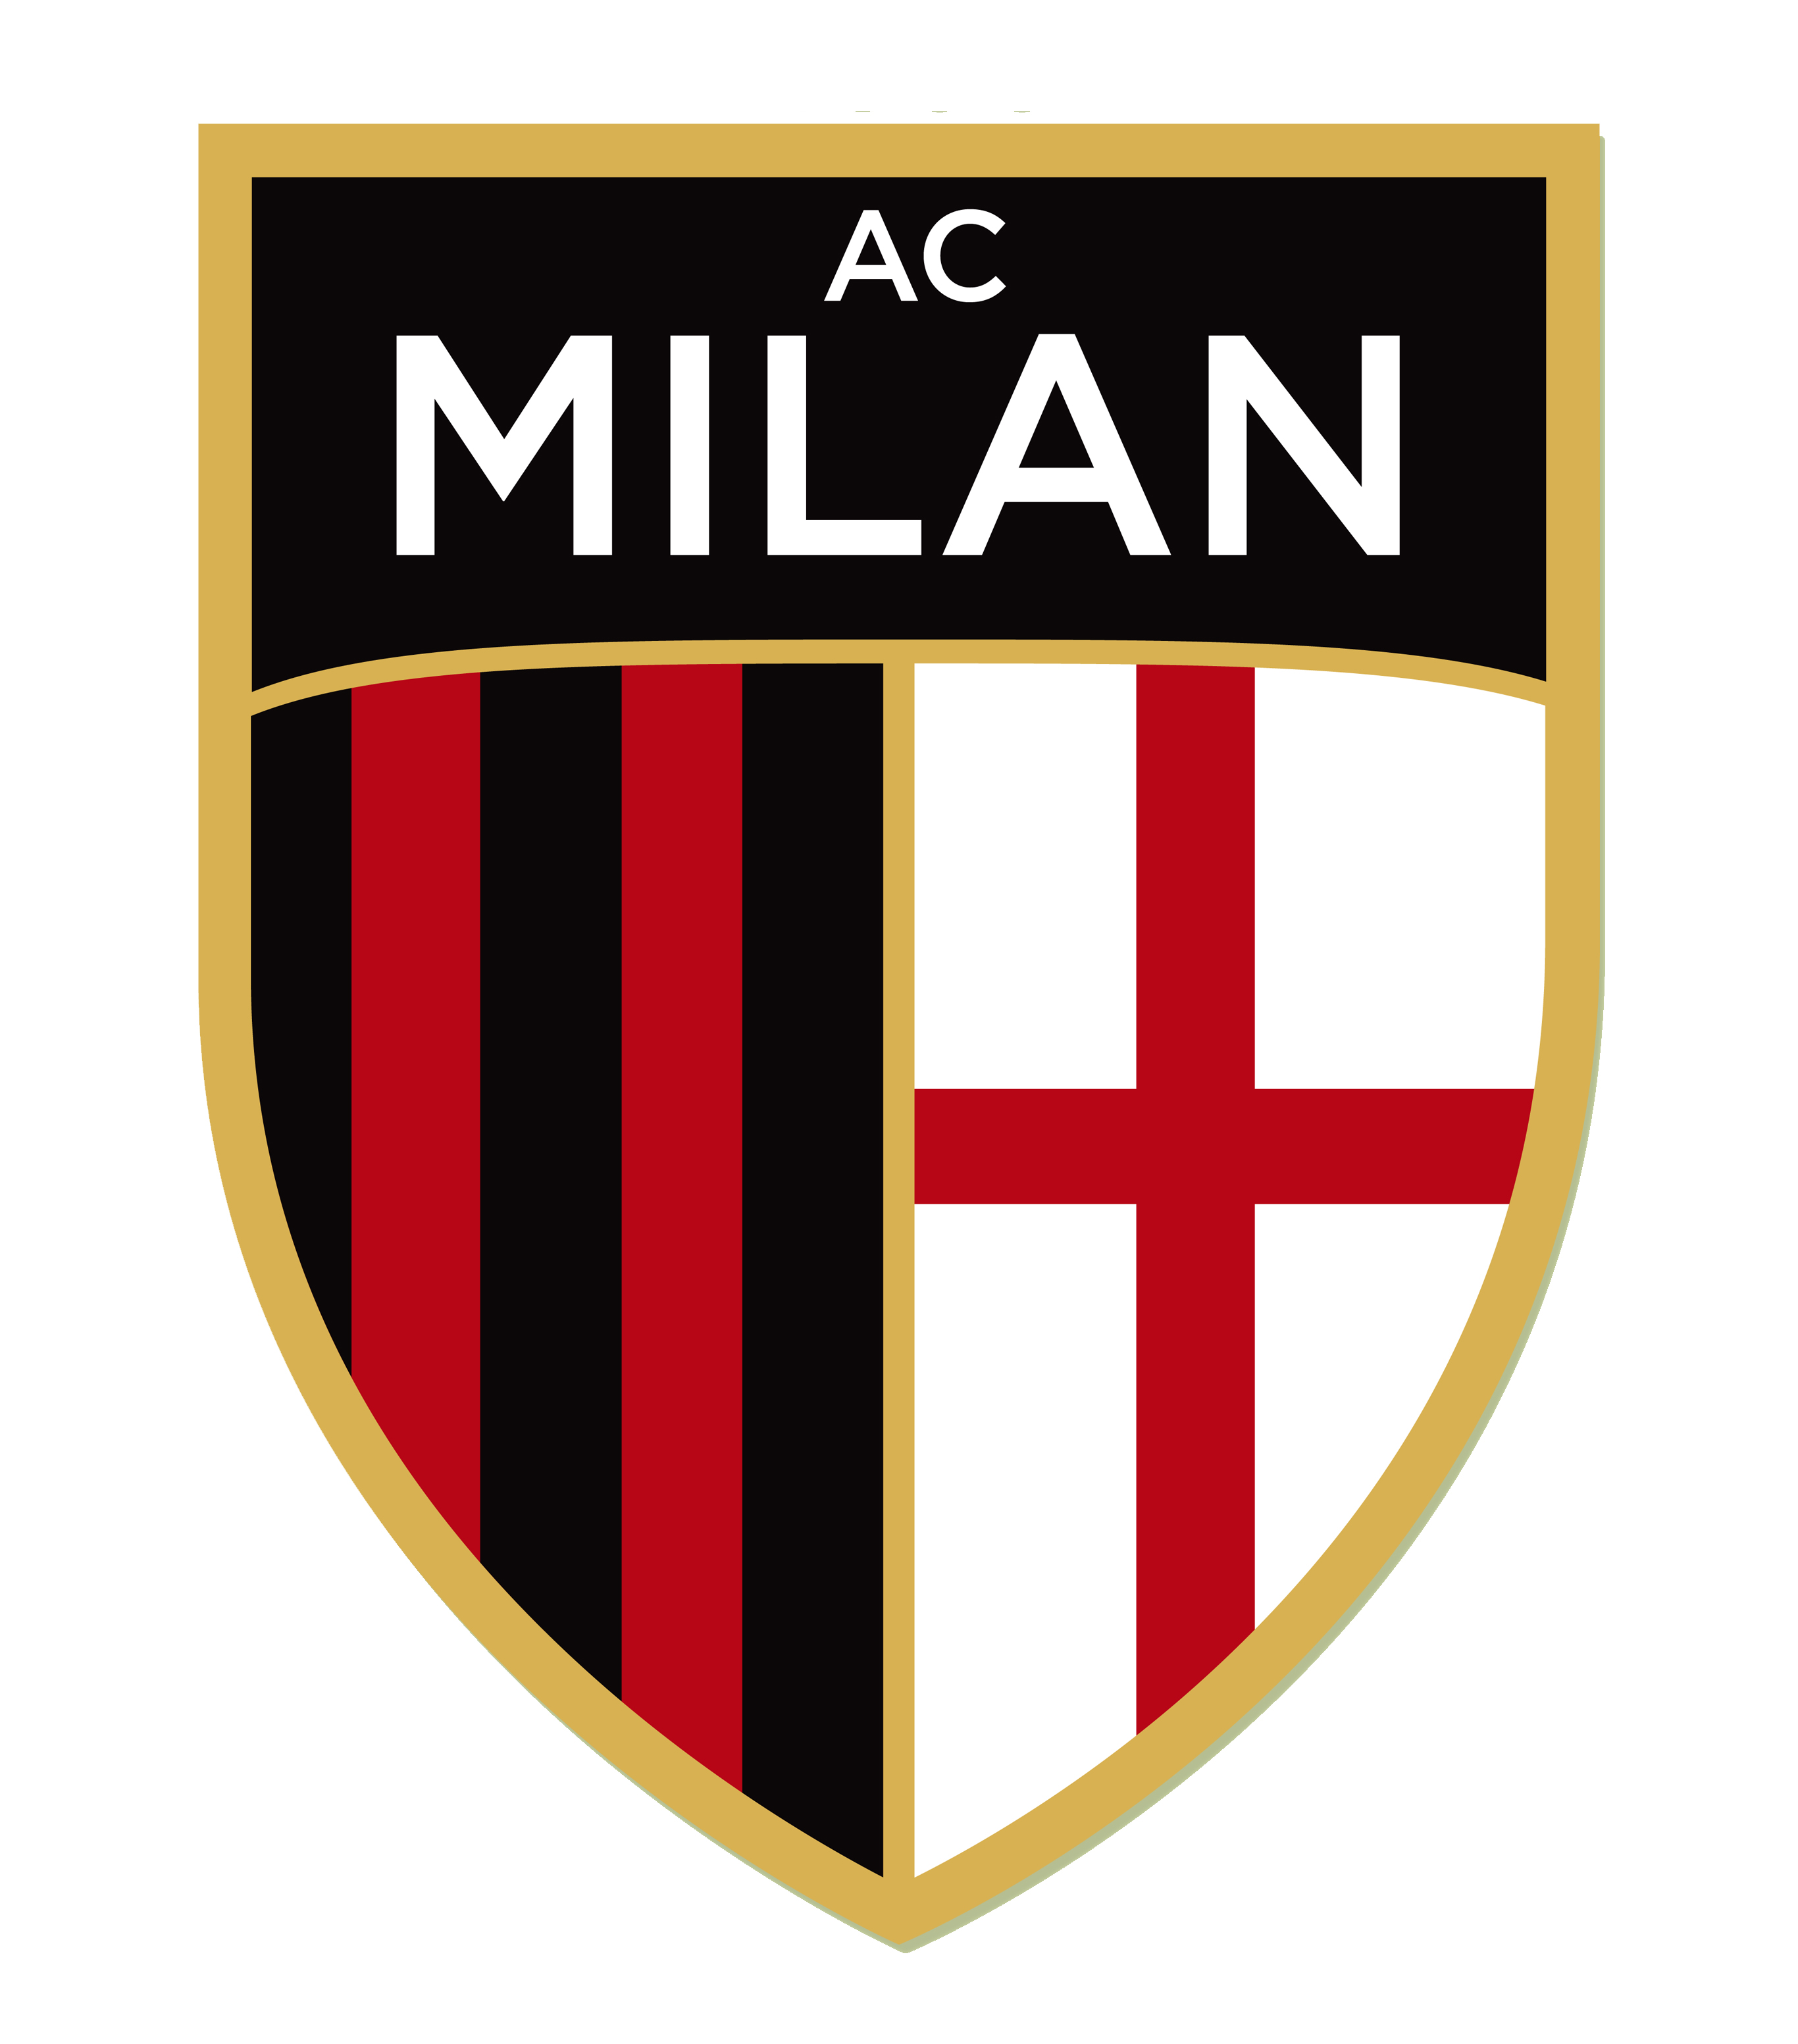 meaning a c milan